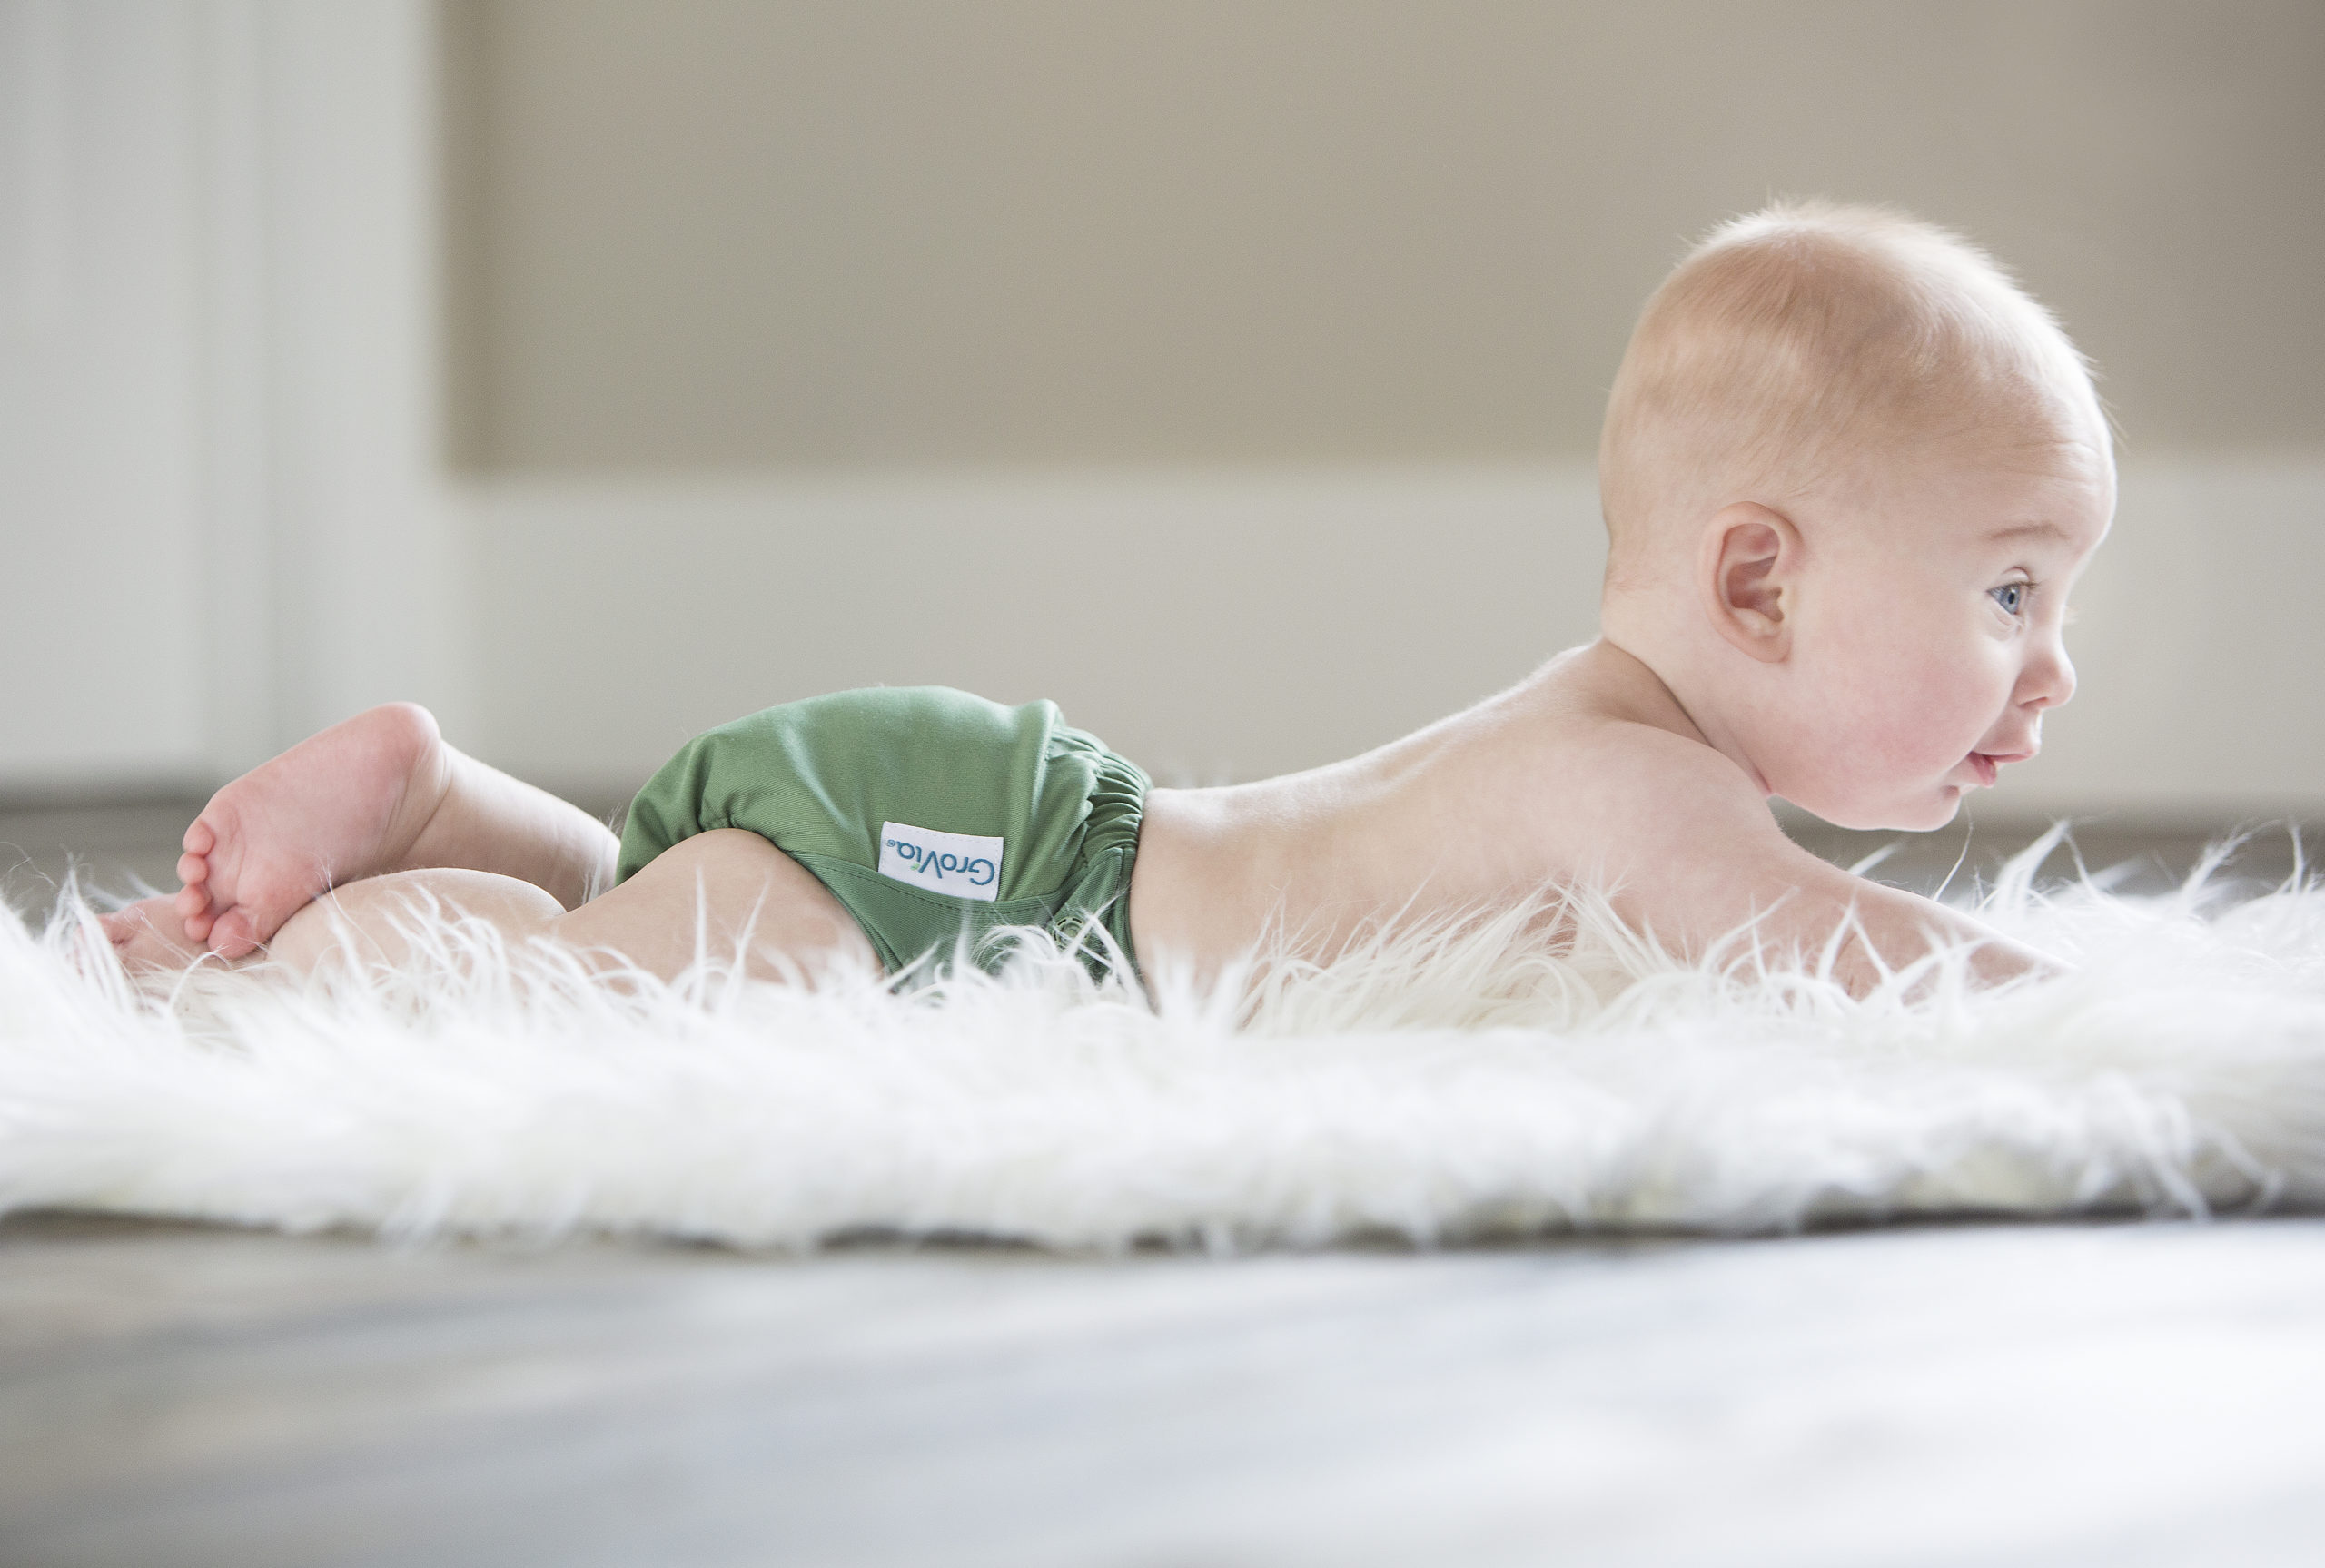 young baby in a grovia basil laying on its tummy on a fluffy white rug